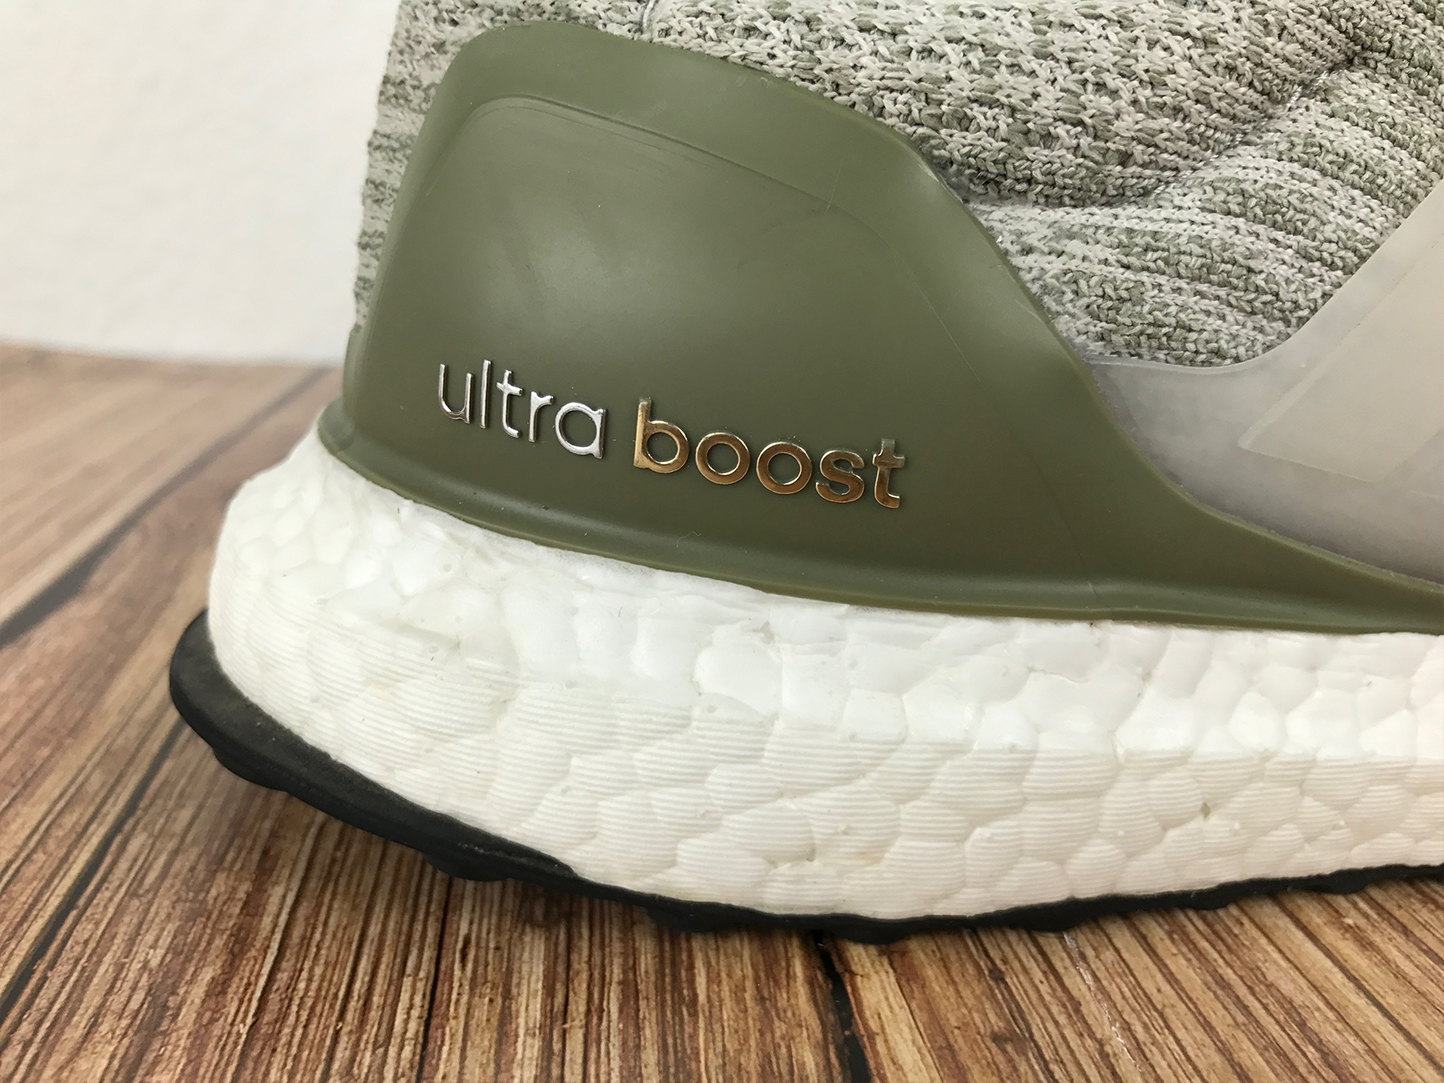 ultra boost sohle